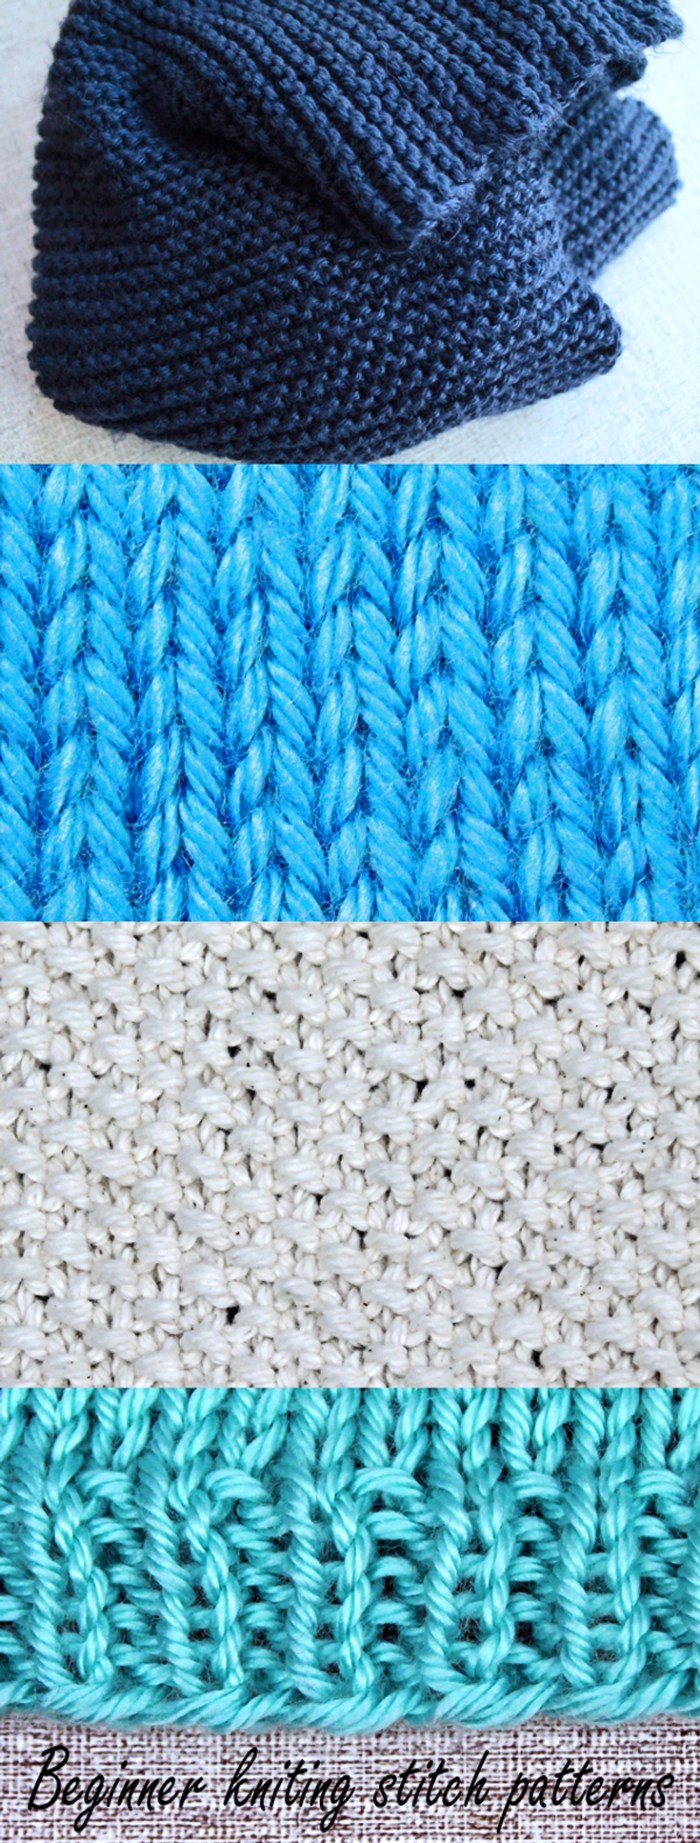 Beginner knitting stitch patterns, free knitting lesson from PurlsAndPixels